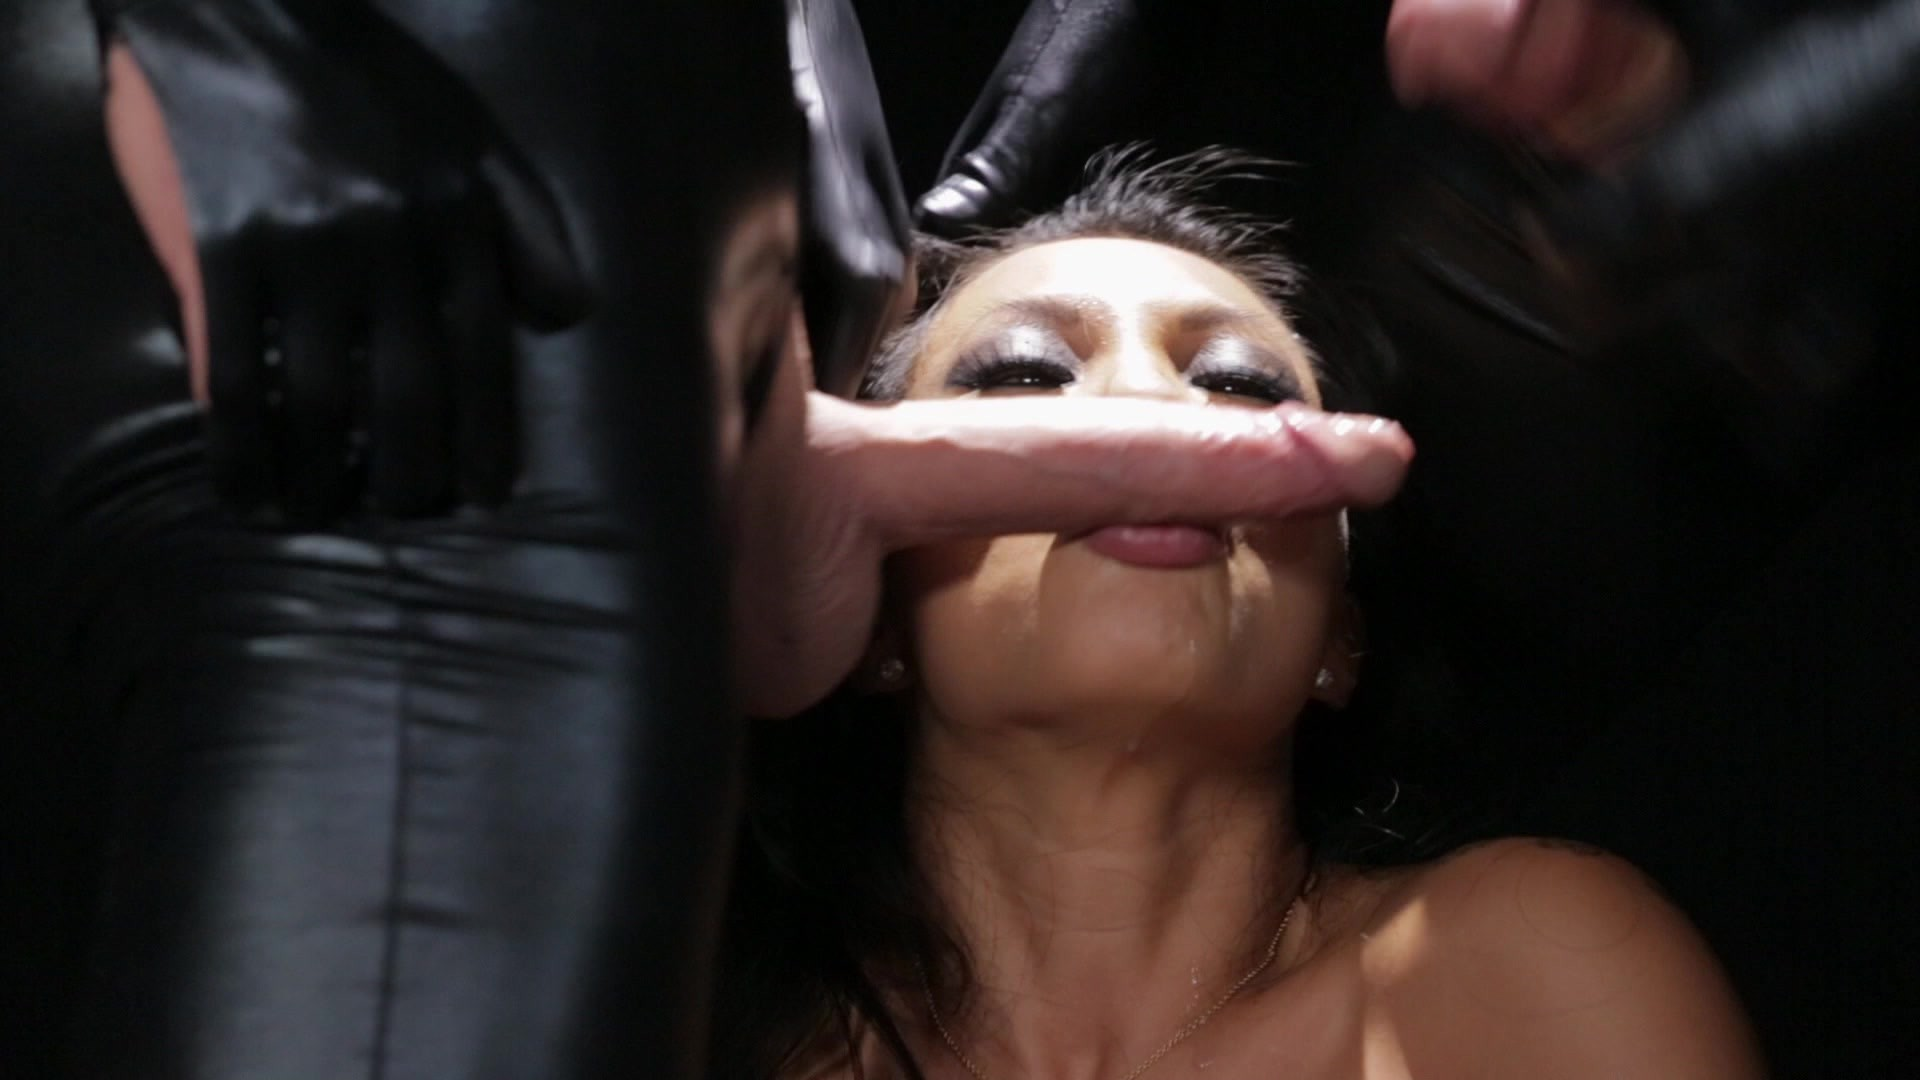 Scene with Asa Akira - image 14 out of 20